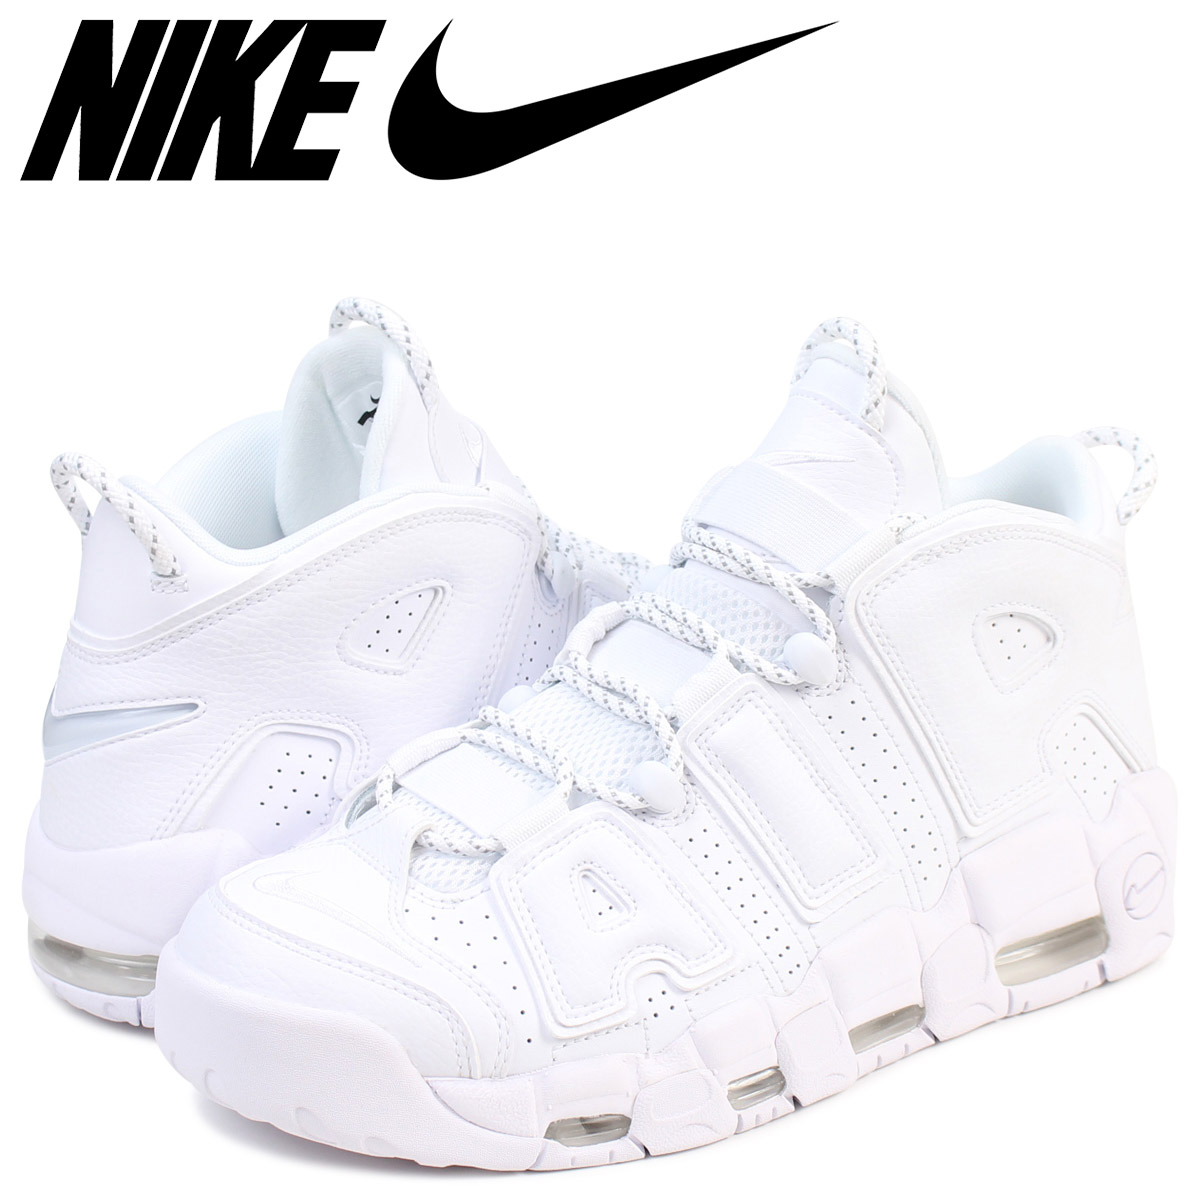 7043f2c4cf NIKE Nike up tempo sneakers AIR MORE UPTEMPO 96 921,948-100 men's shoes  white ...